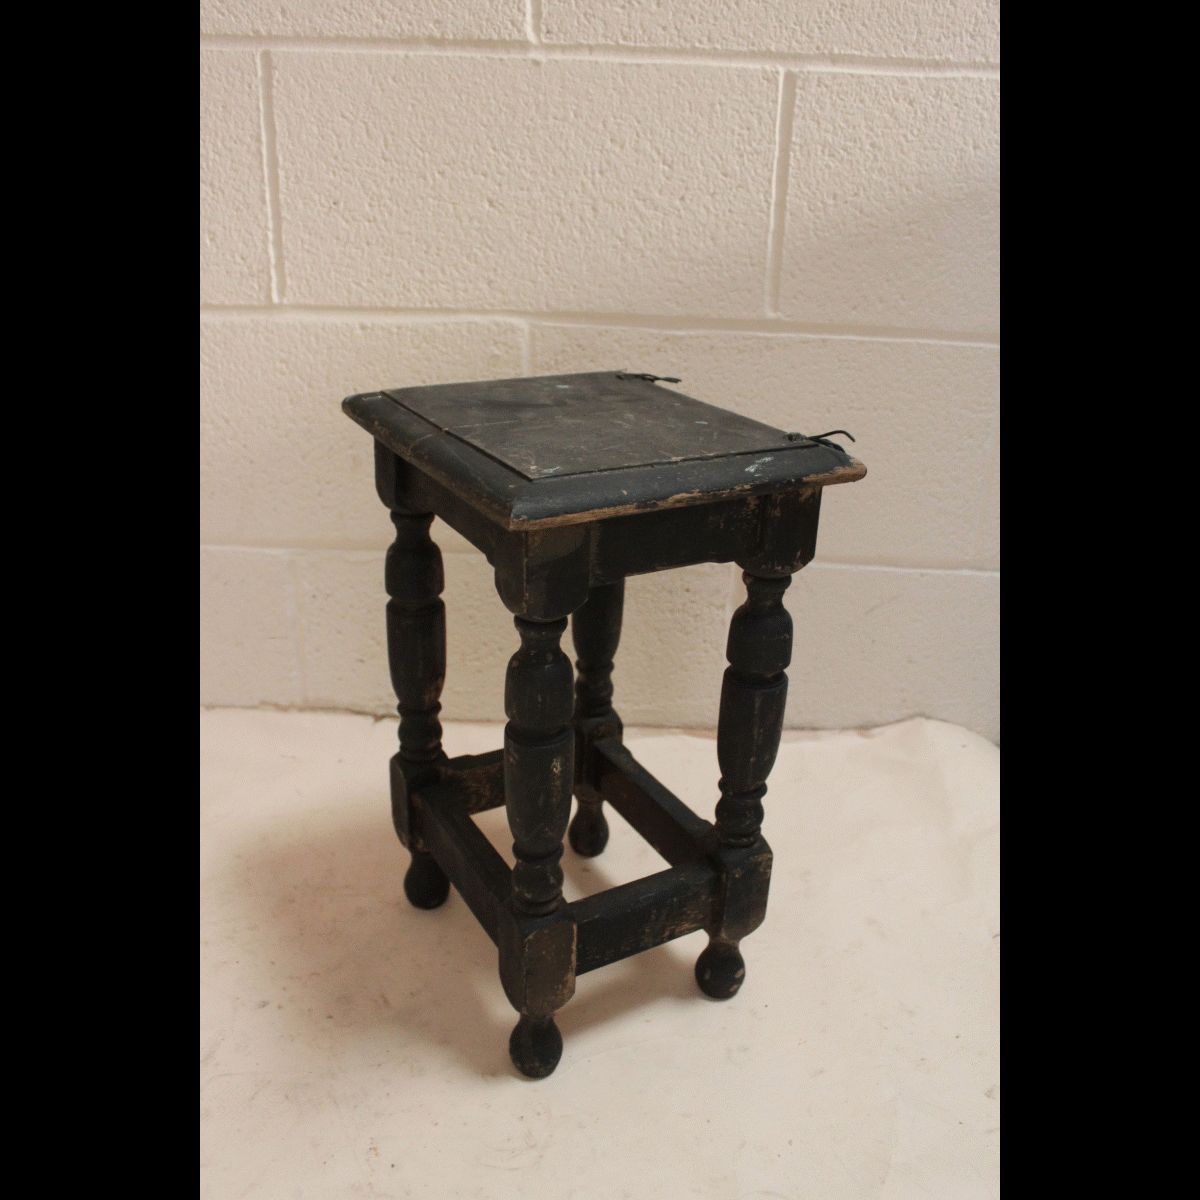 Pleasant 0078082 Small Black Wood Stool X1 29Cm Wide By 25Cm Front Andrewgaddart Wooden Chair Designs For Living Room Andrewgaddartcom